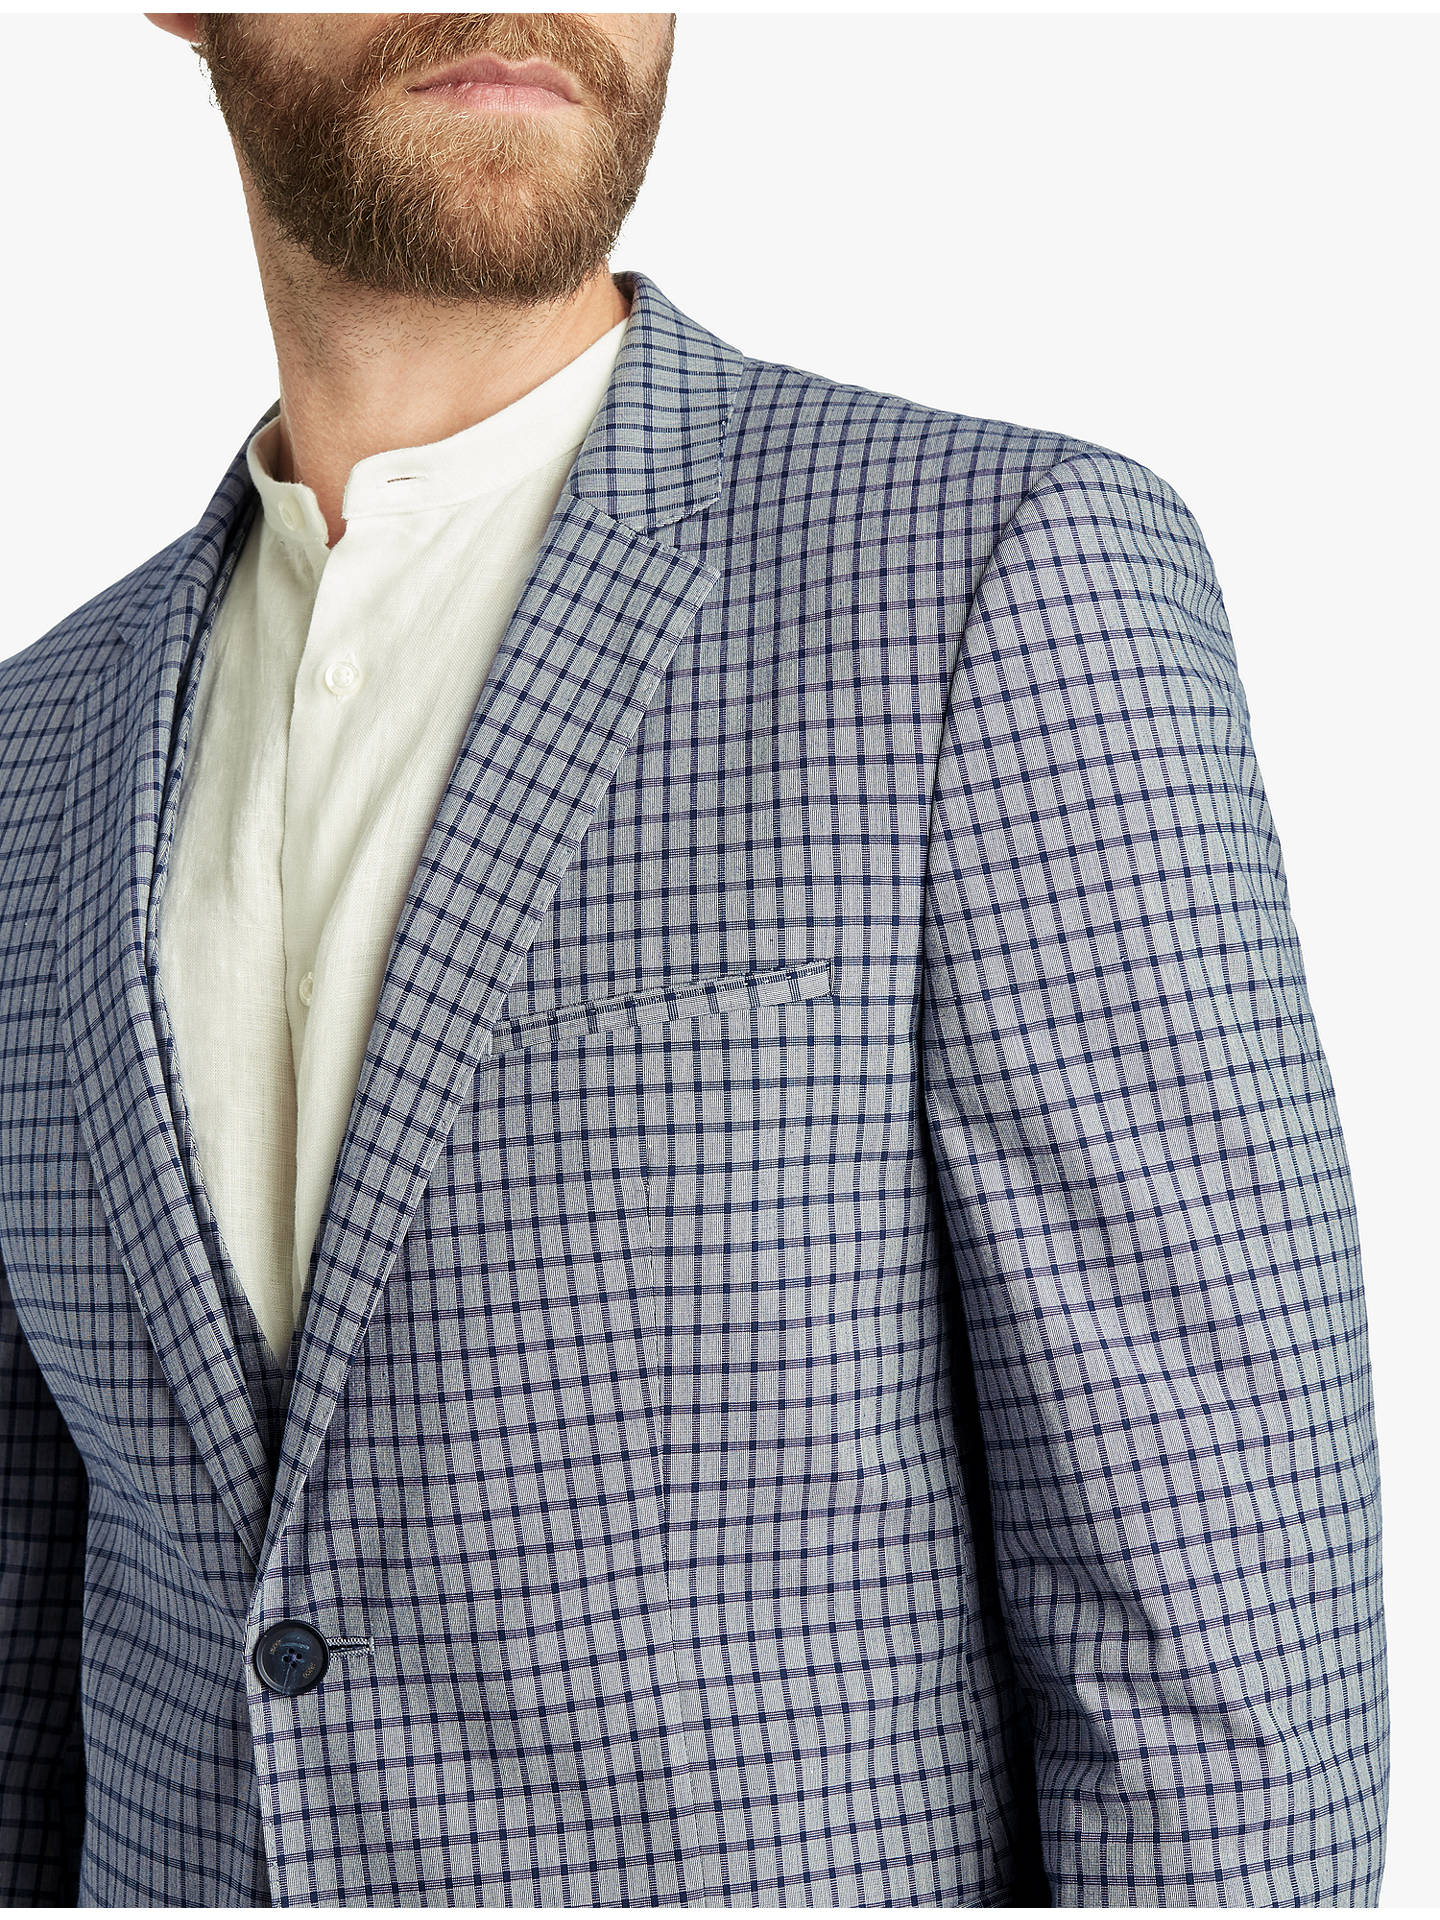 bfd7fb90 ... Buy HUGO by Hugo Boss Glen Check Extra Slim Fit Suit Jacket, Blue, 40R